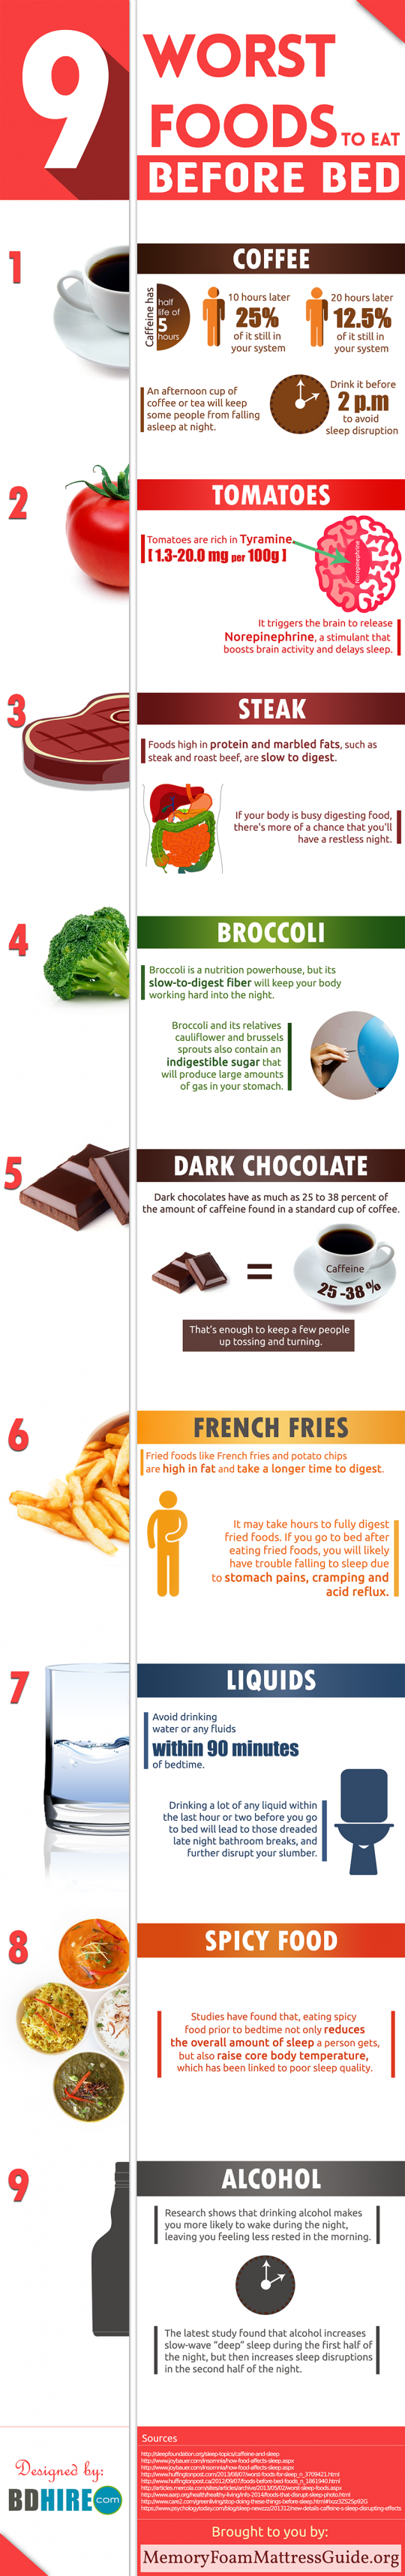 9 Worst Foods To Eat Before Bed (Infographic)